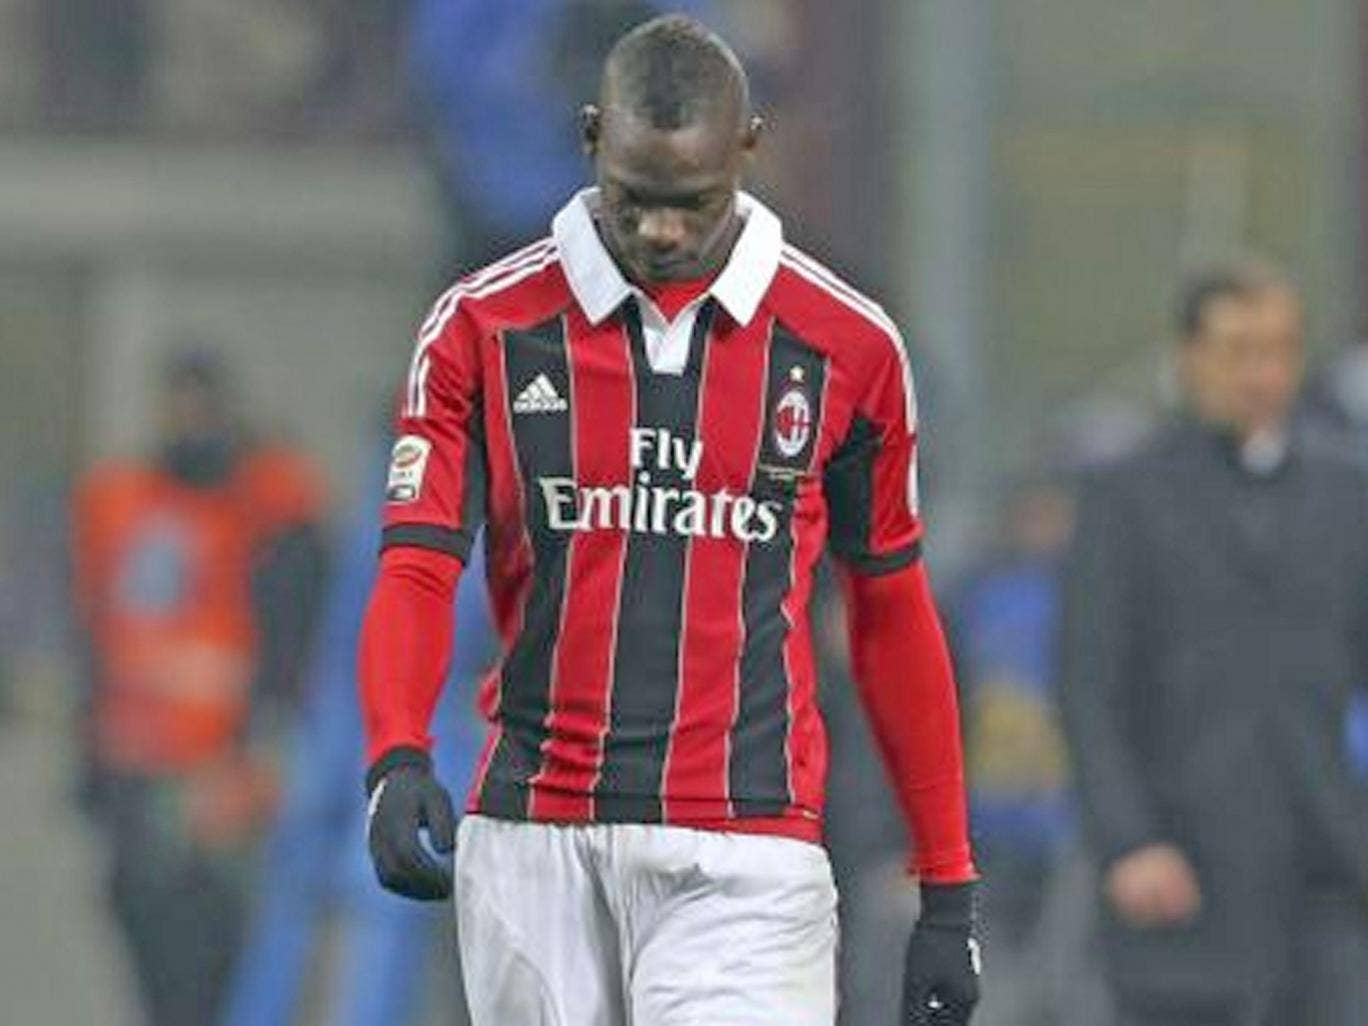 Mario Balotelli was abused by Internazionale fans